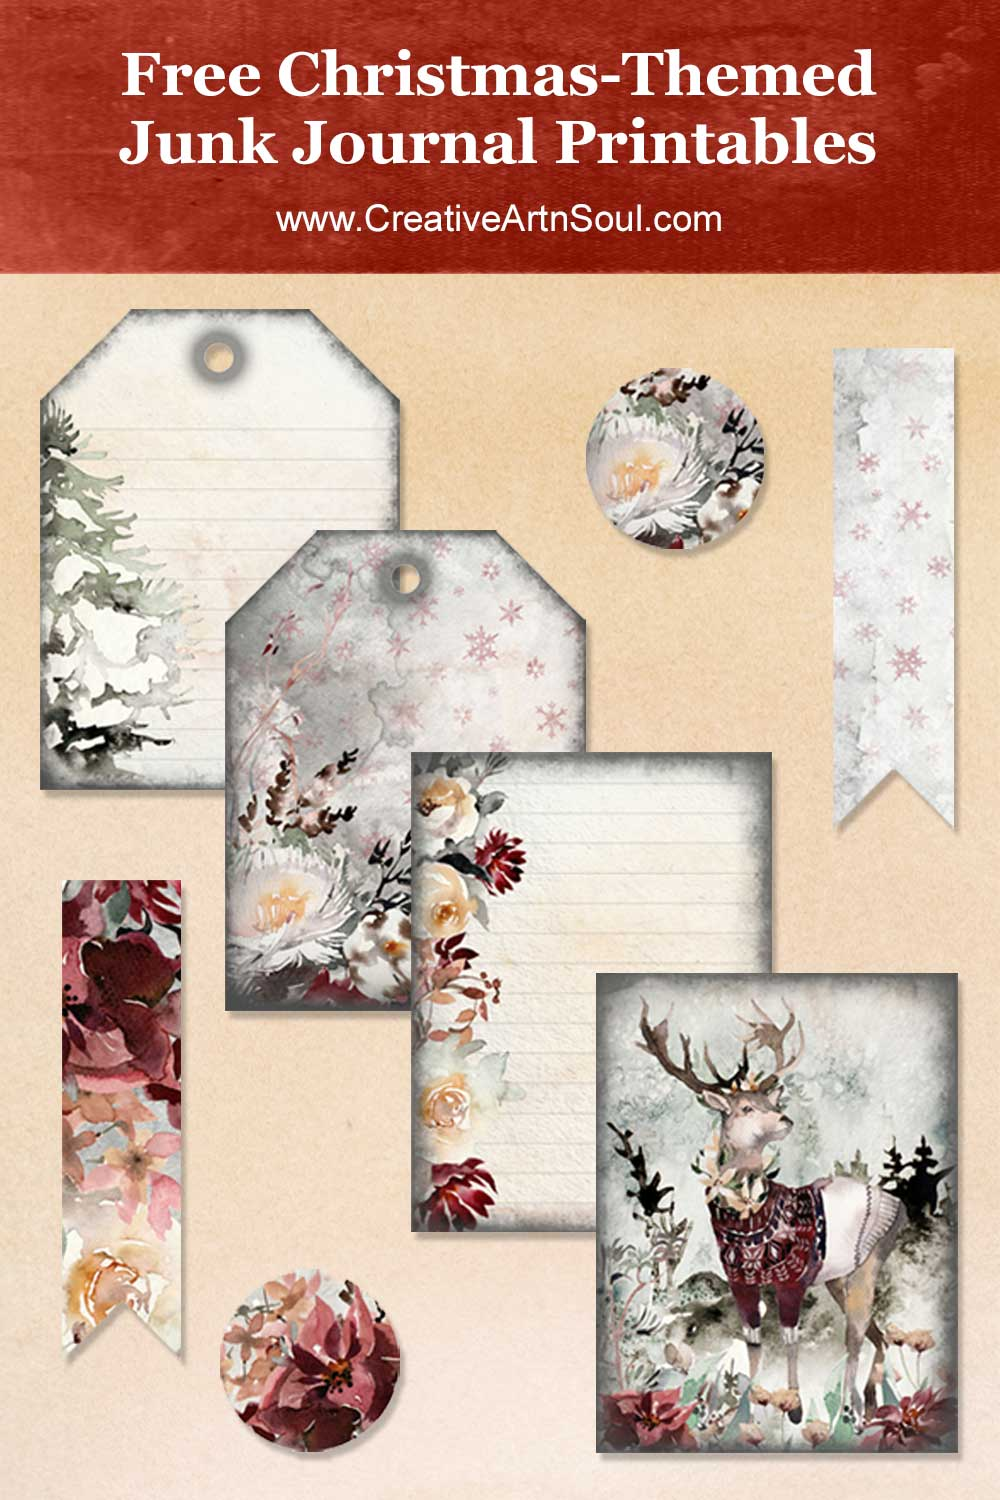 Free Christmas-Themed Printables for Your Junk Journal